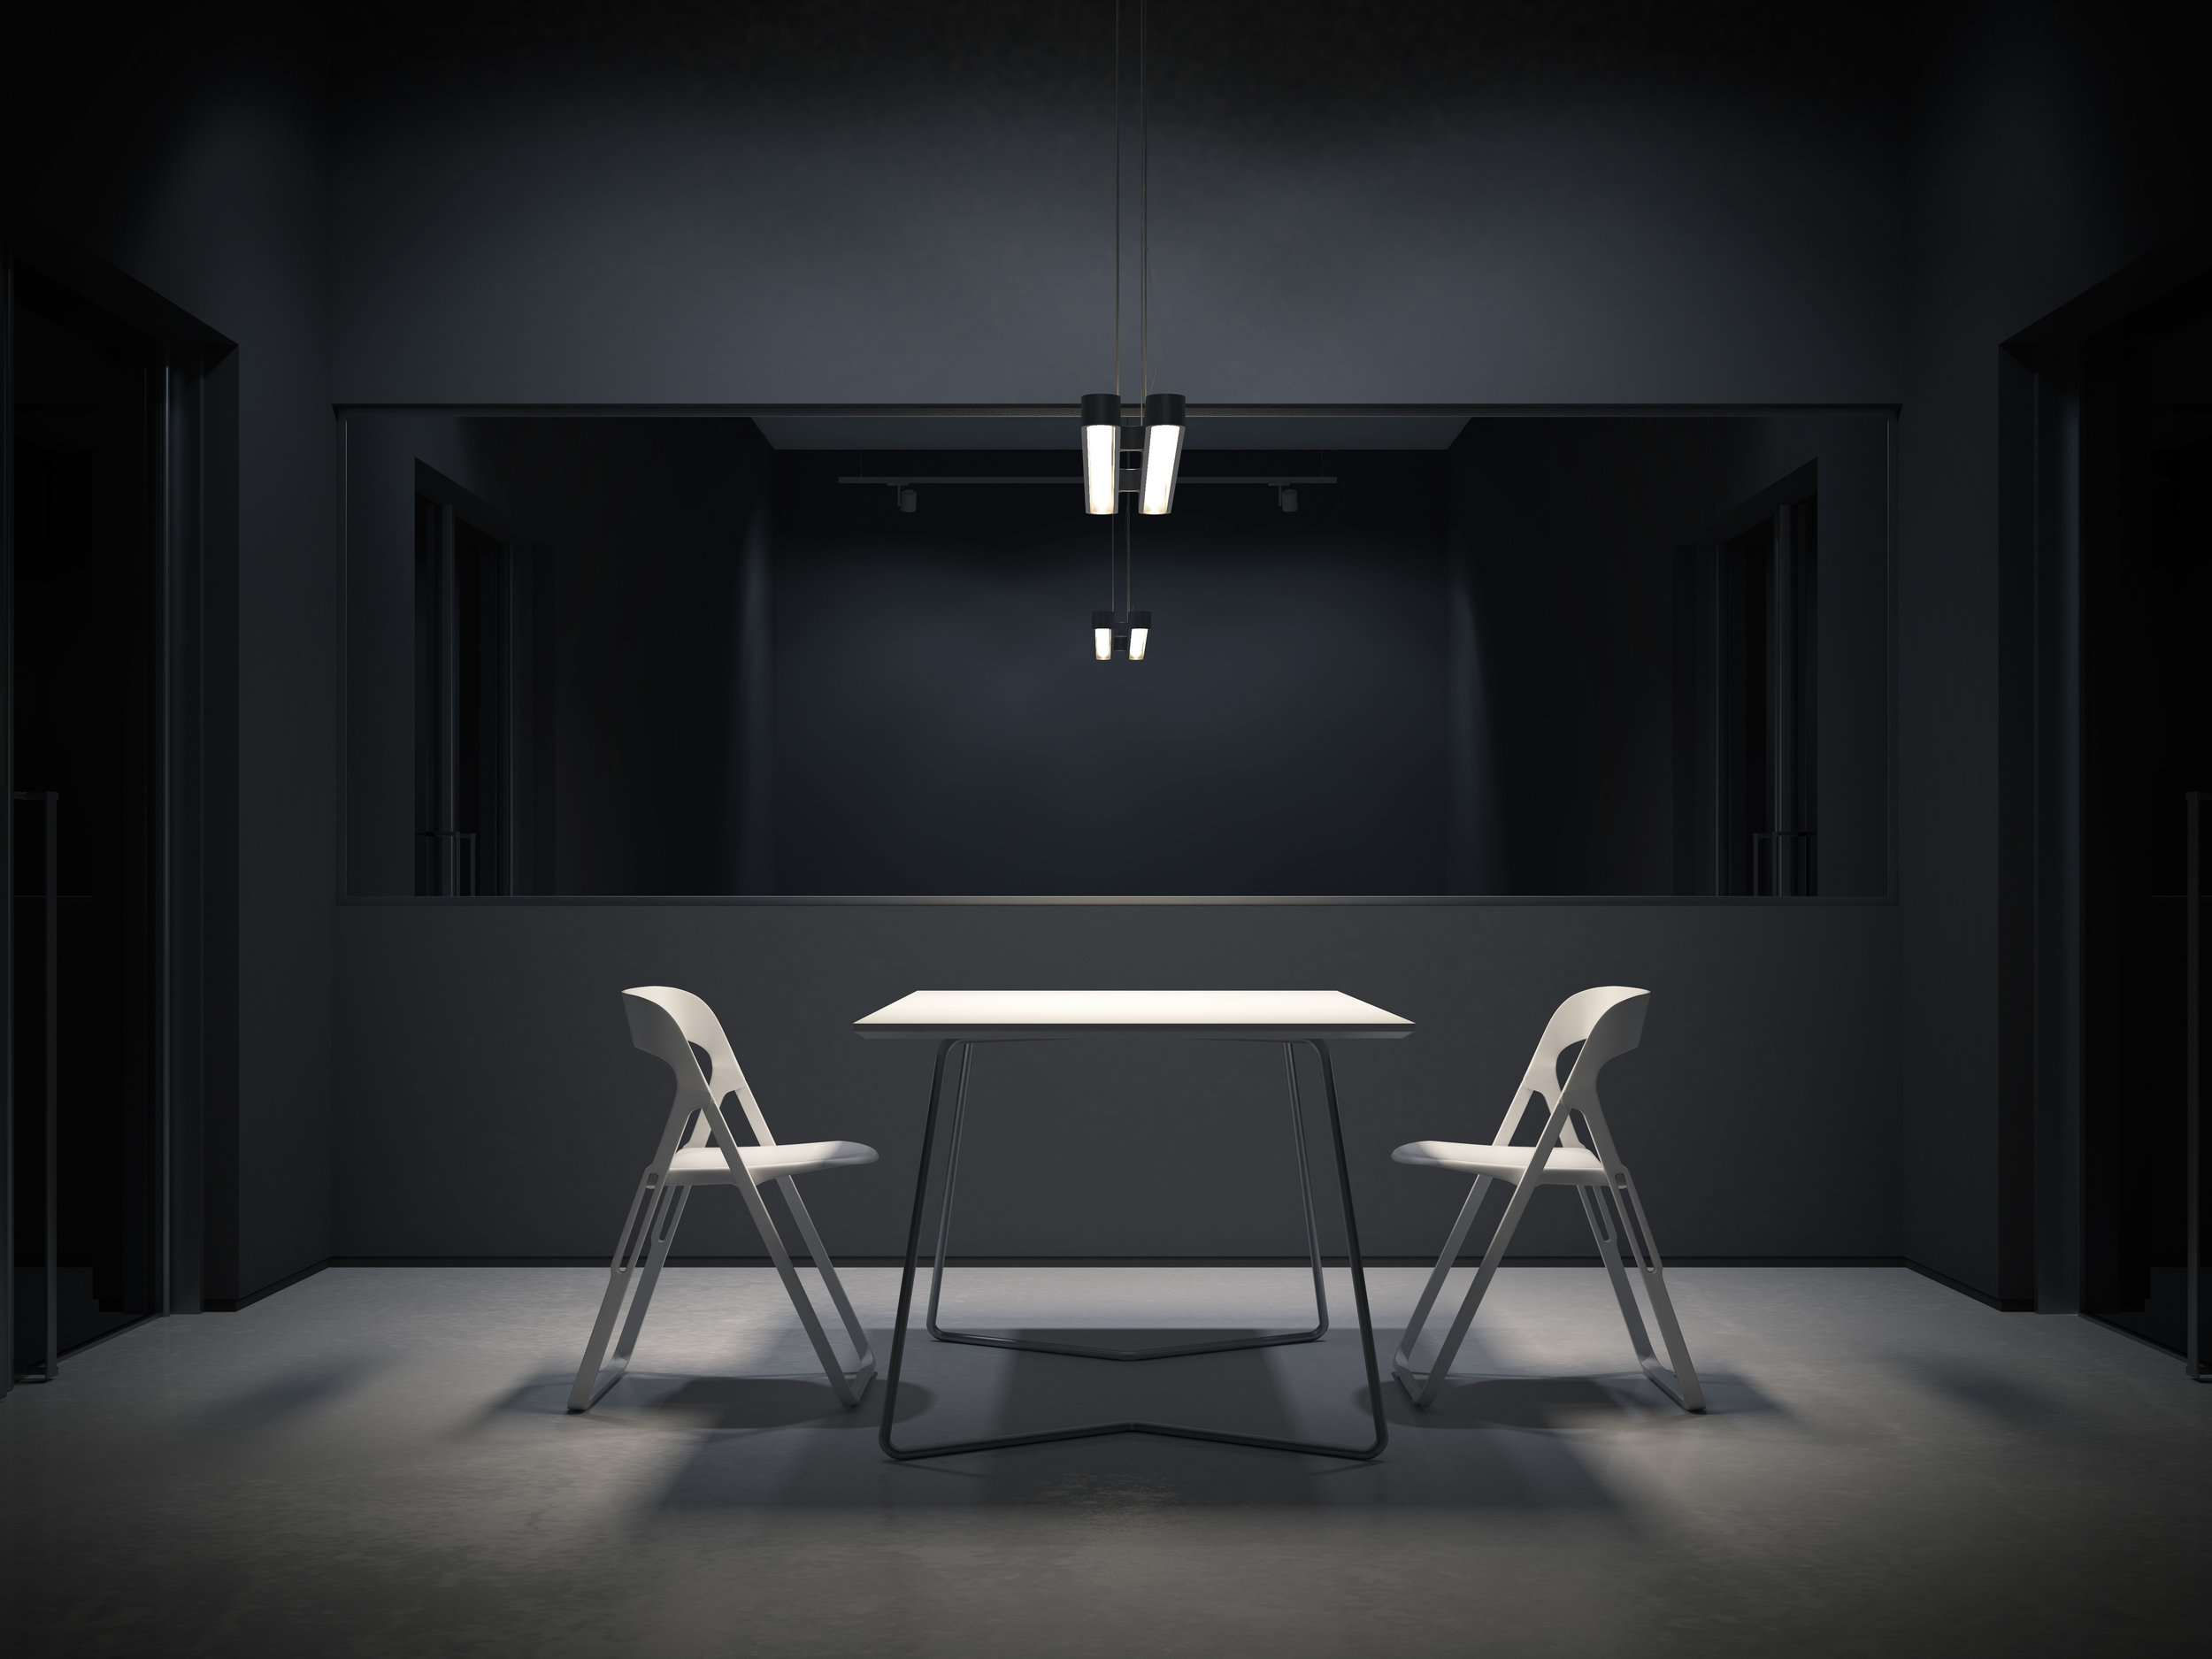 Image - Interrogation, room.jpg